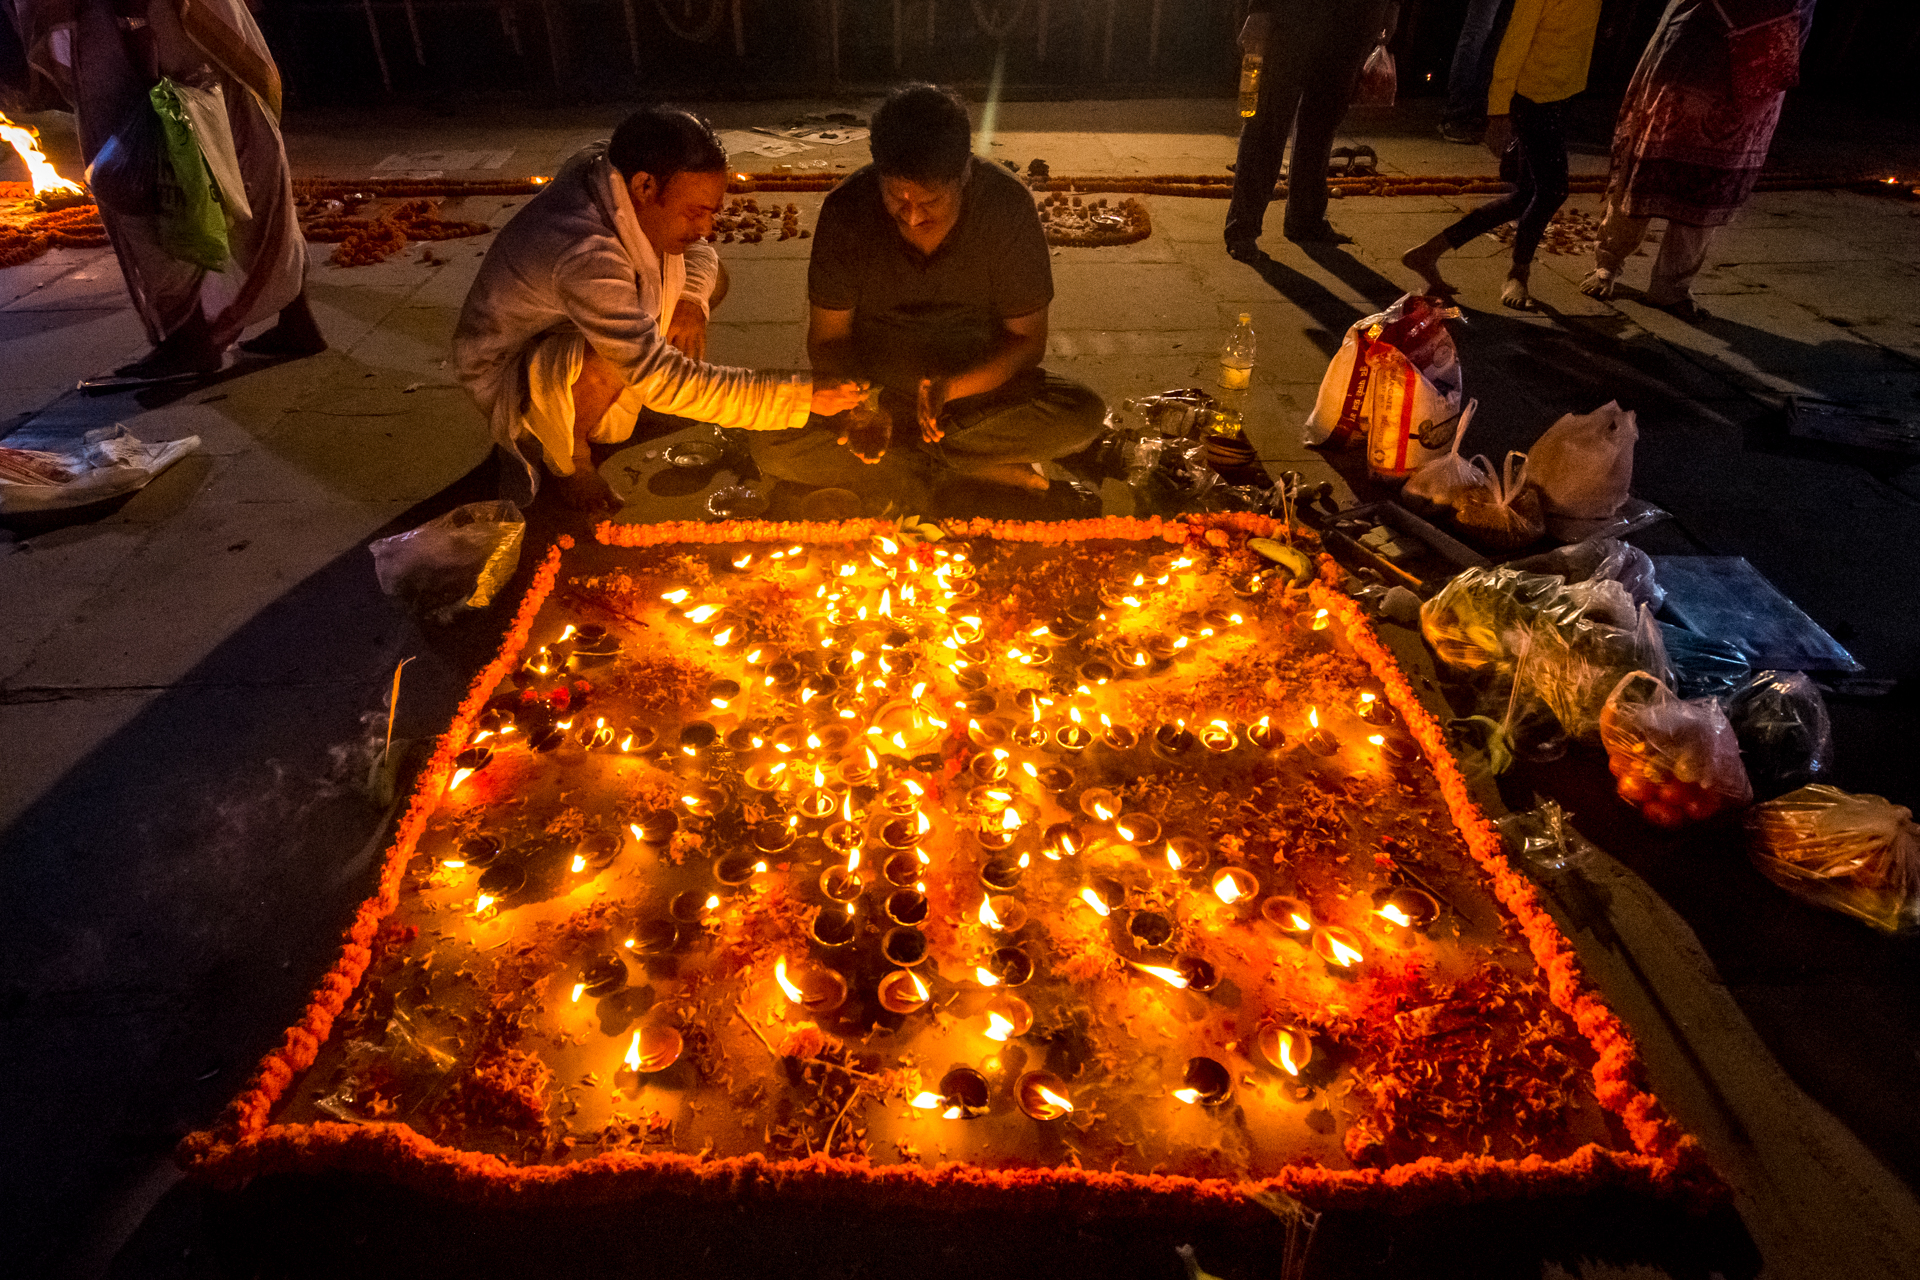 The Dev Deepavali is the festival of lights as per Hindu mythology where the Gods transcend to the Holy city of Varanasi to celebrate the festival of light in the Ghats of Holy Ganges.